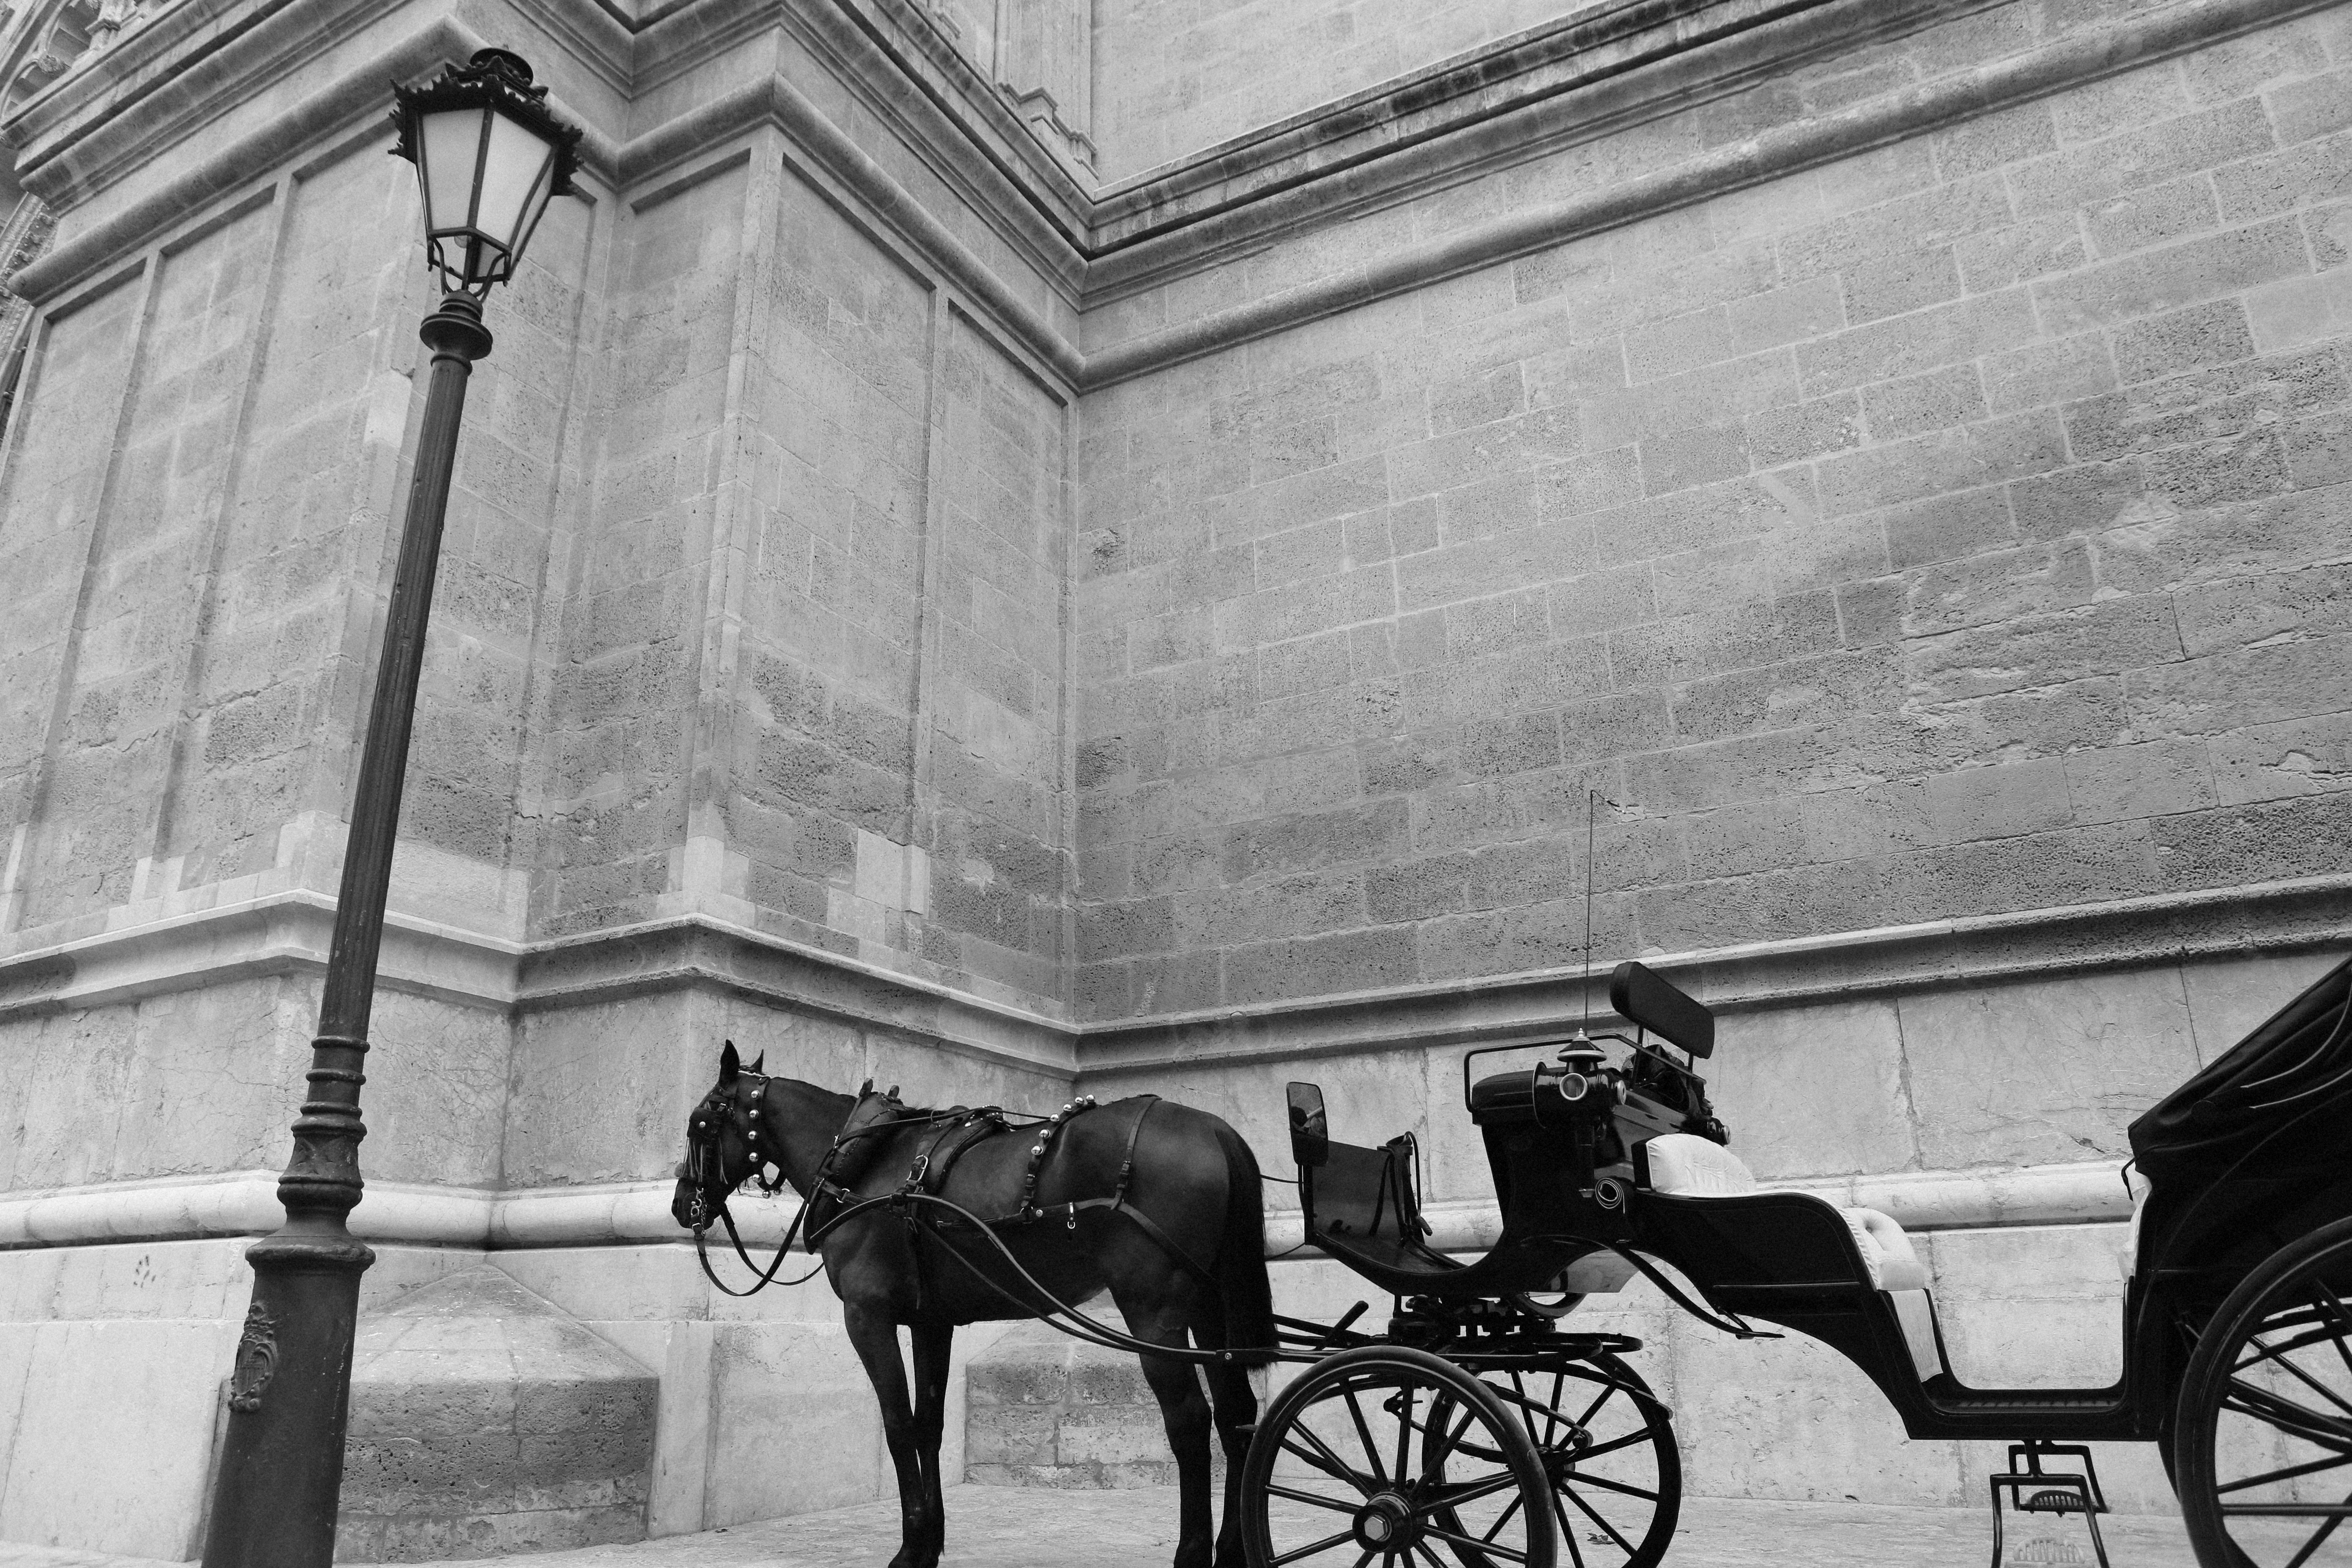 2014-06-11-Life-Of-Pix-Free-Stock-Photos-city-black-white-carriage